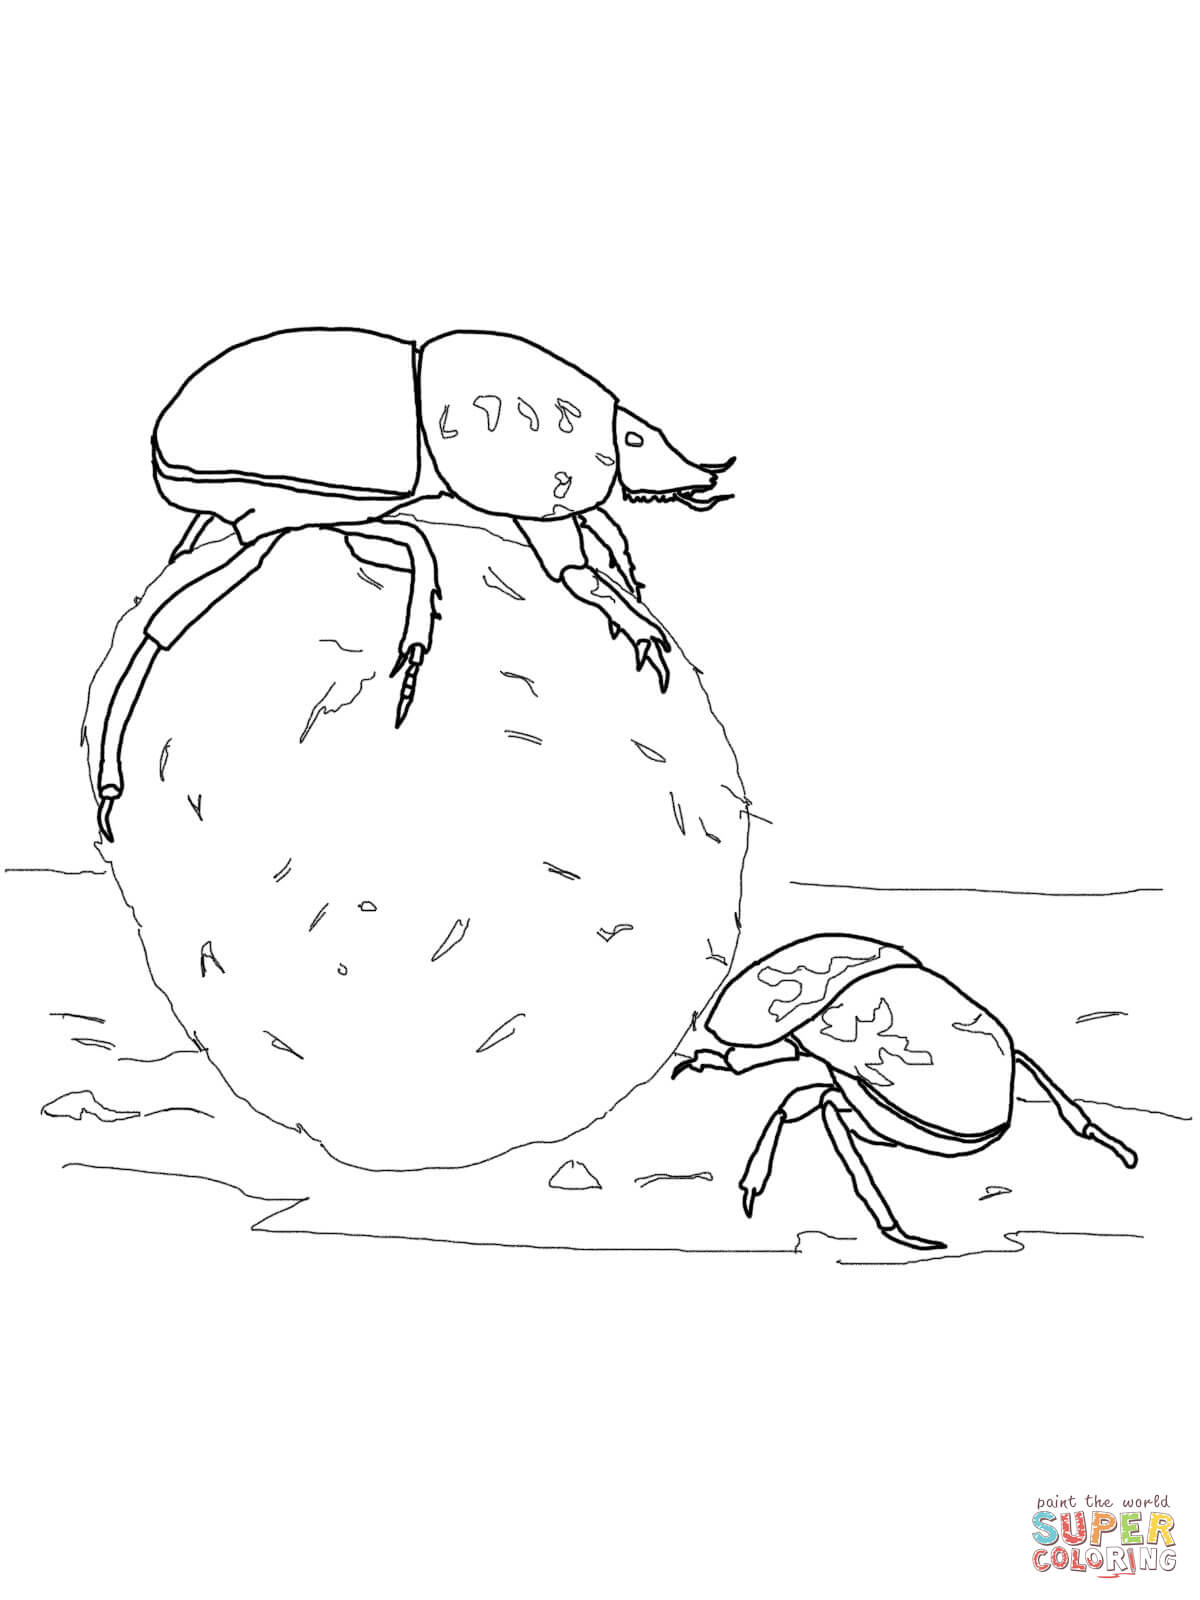 Dung Beetle coloring #11, Download drawings